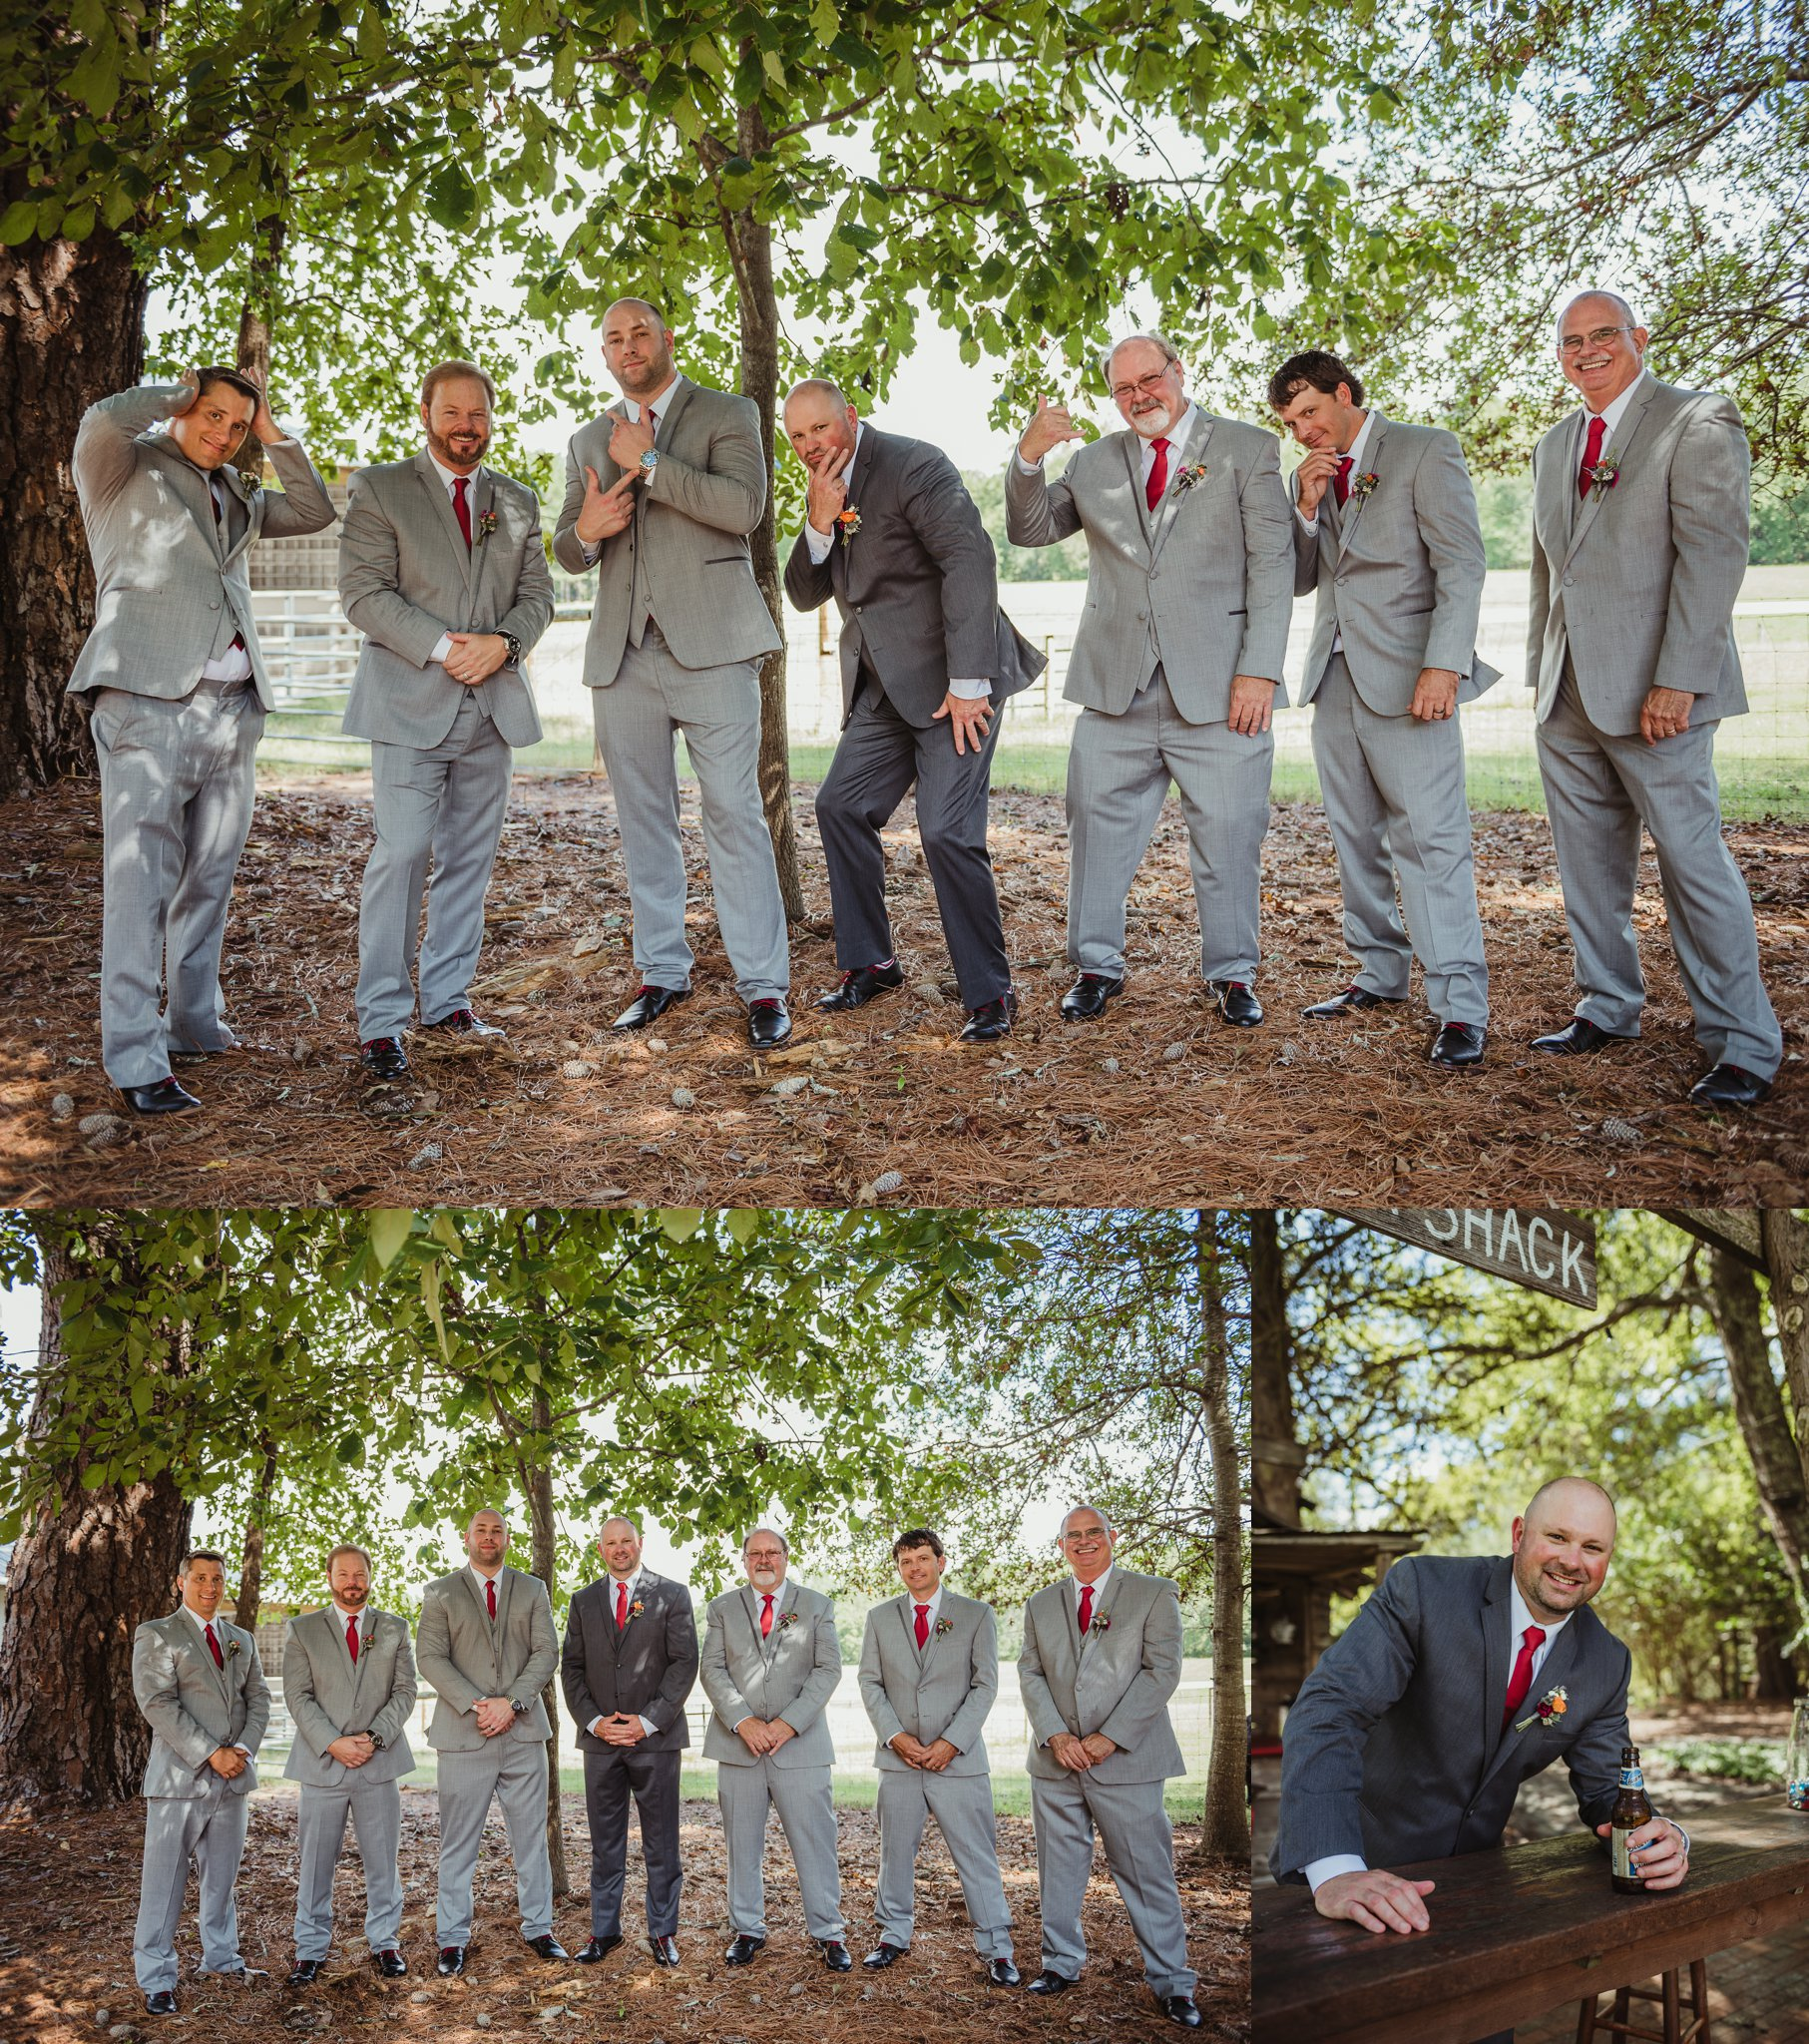 The groom and his groomsmen pose for portraits with Rose Trail Images after his wedding ceremony at Cedar Grove Acres near North Carolina.